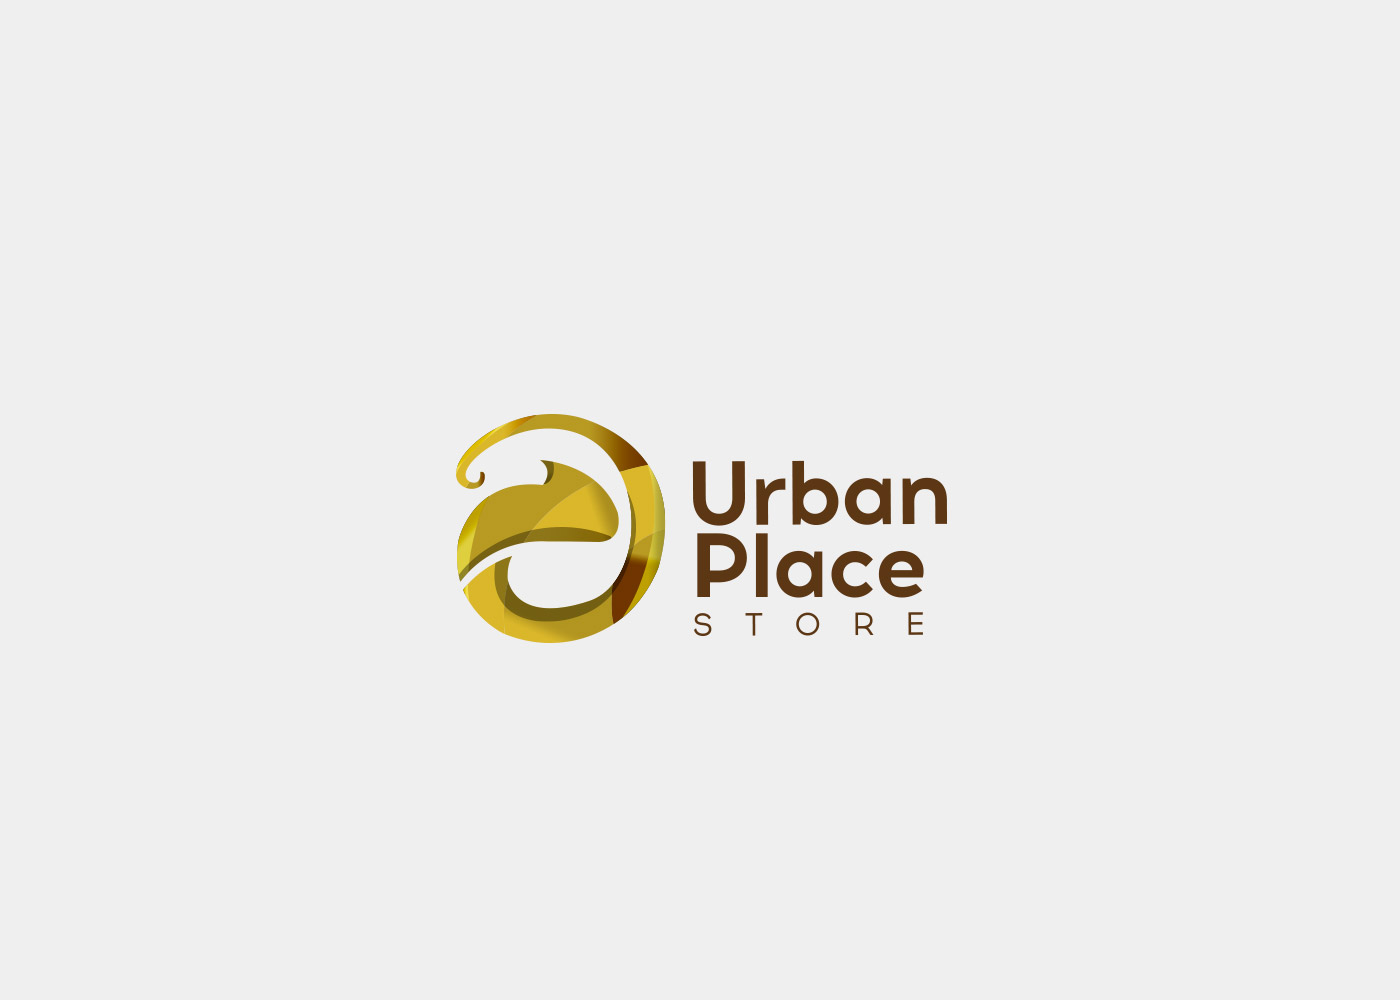 6715e53f00d69 Urban Place - Qroz Design-Digital Solutions